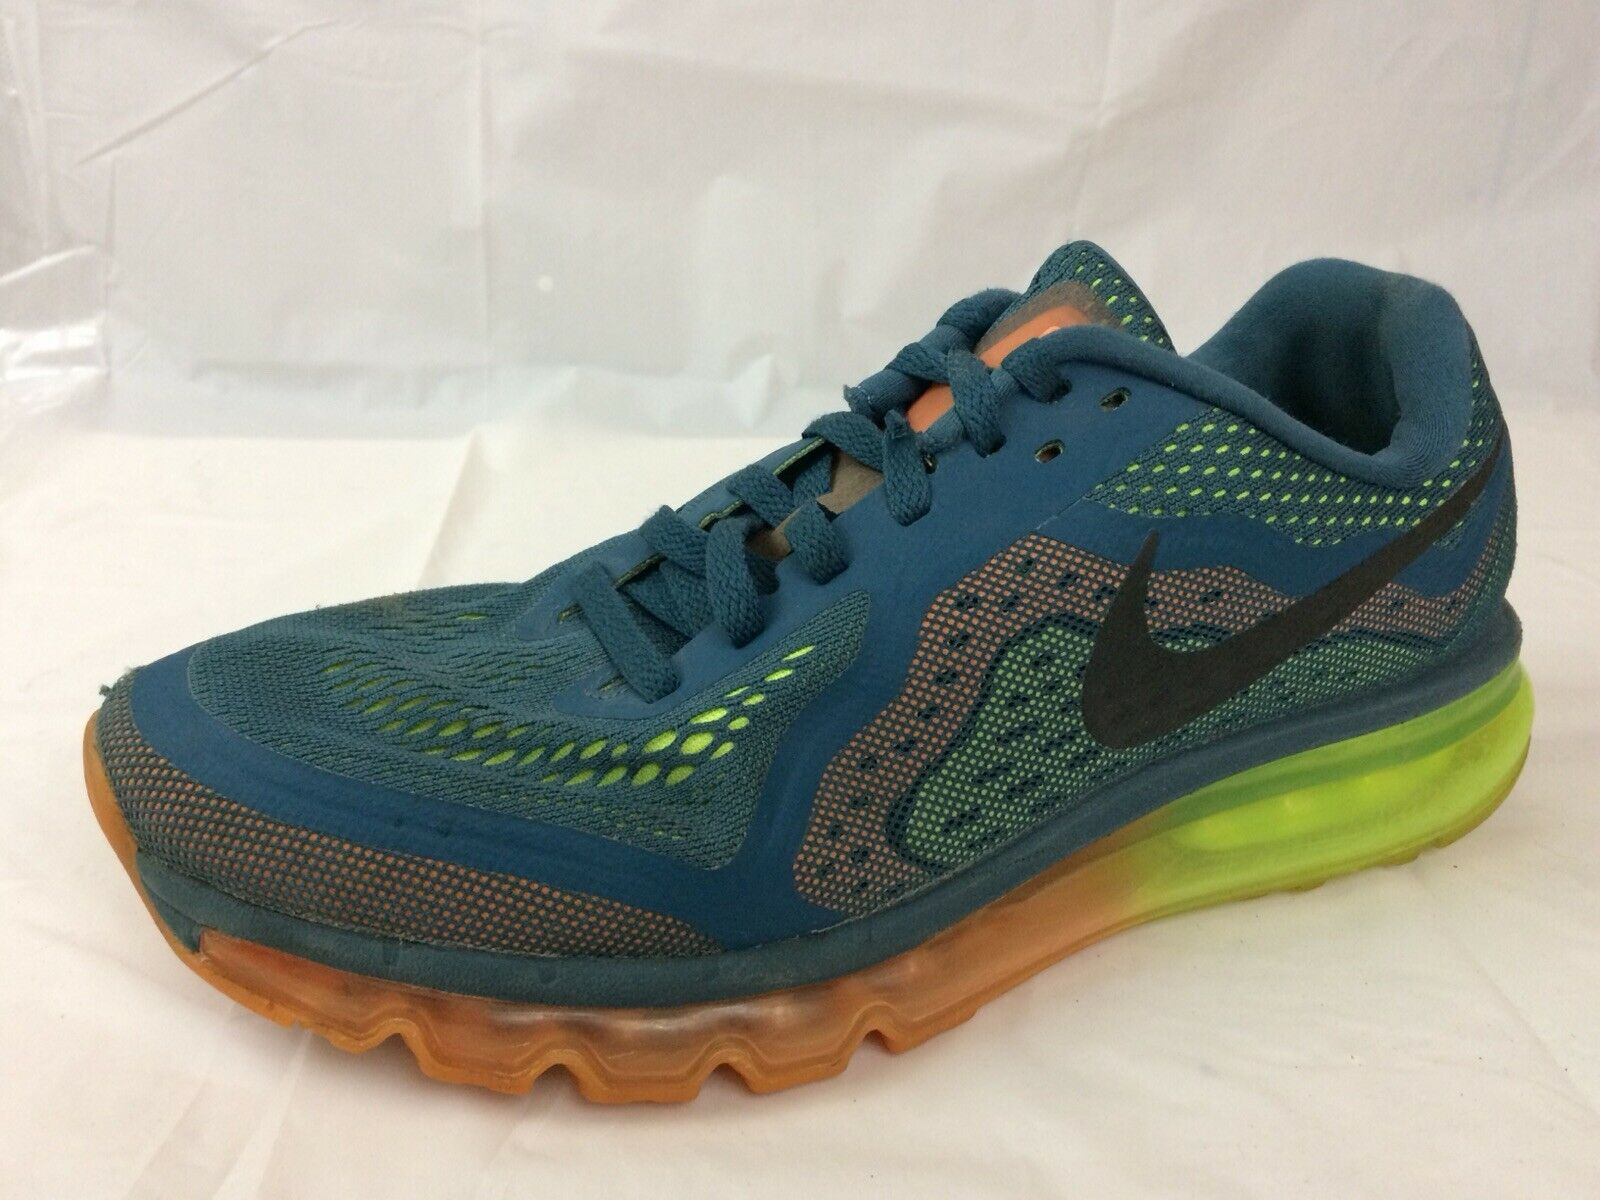 Nike Air Max 2014 Mens 9.5 Med Night Factor bluee orange 621077-308 Running shoes